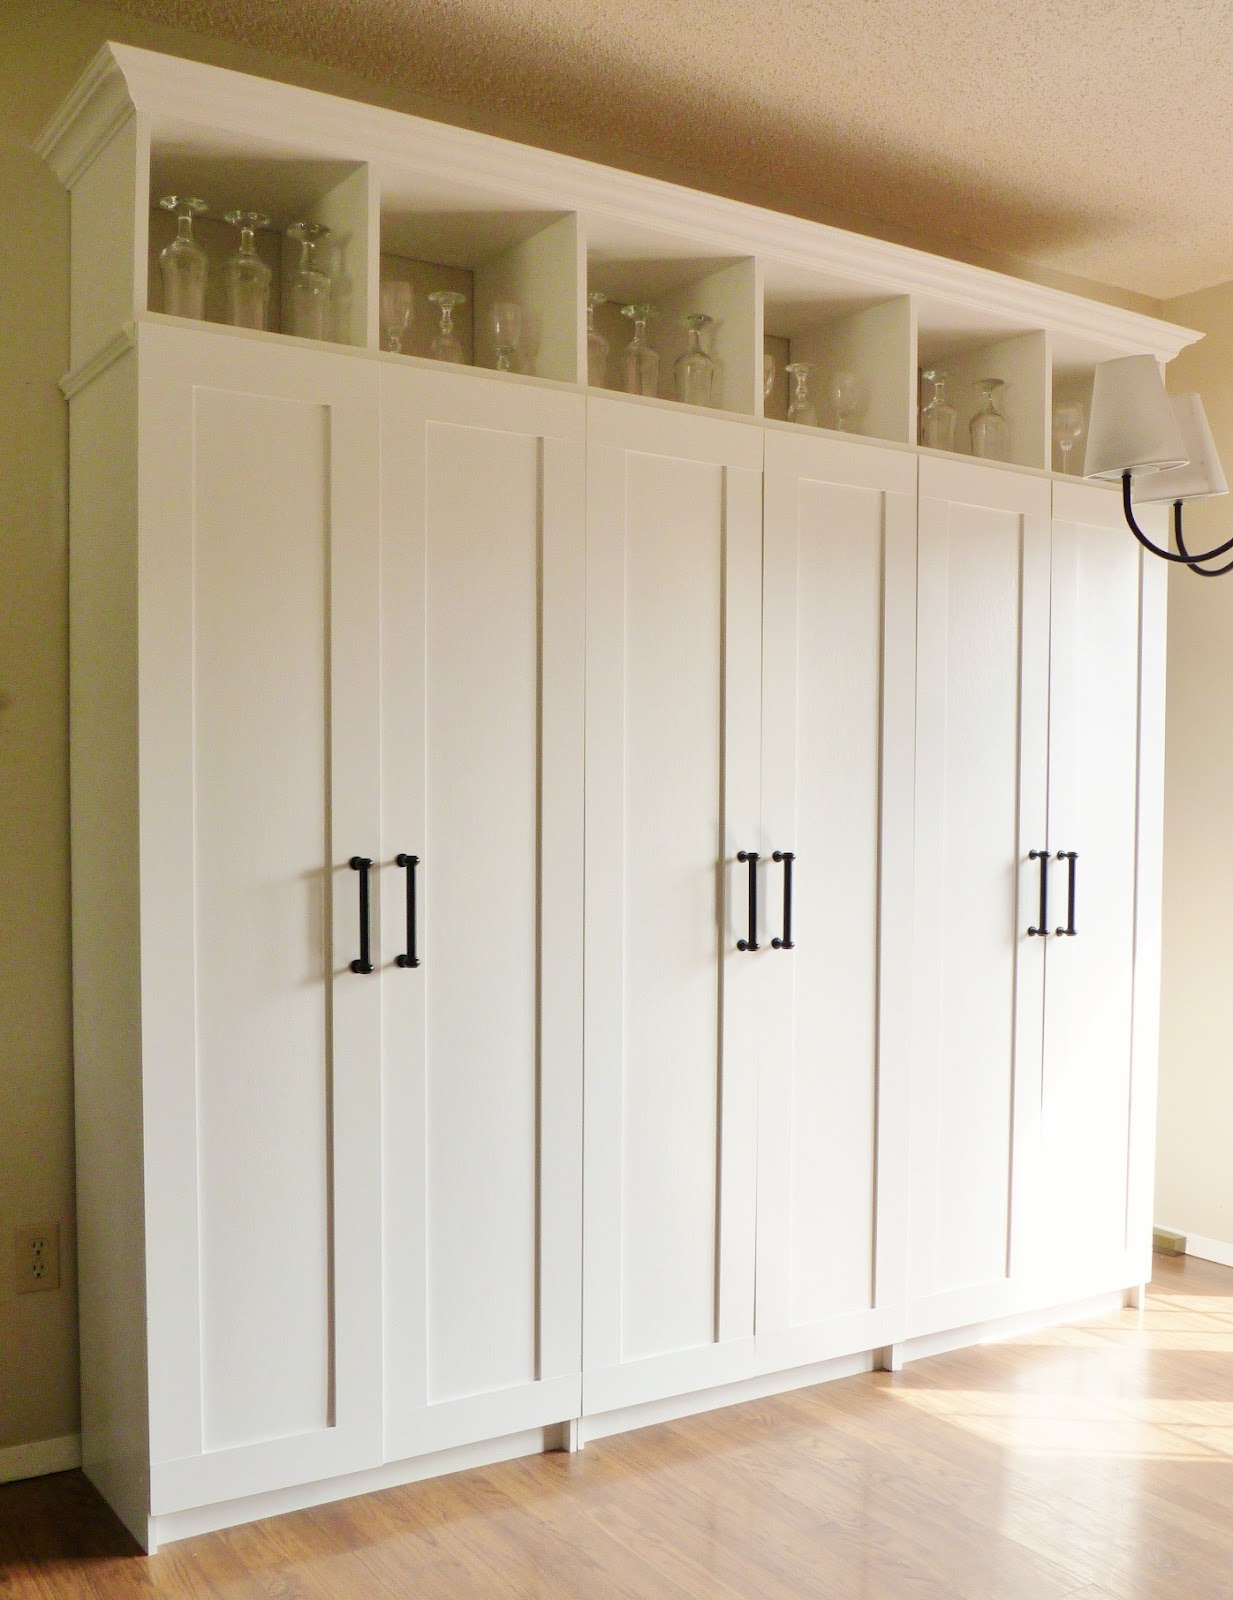 Top Diy Tutorials Kinda Custom Storage Cabinet